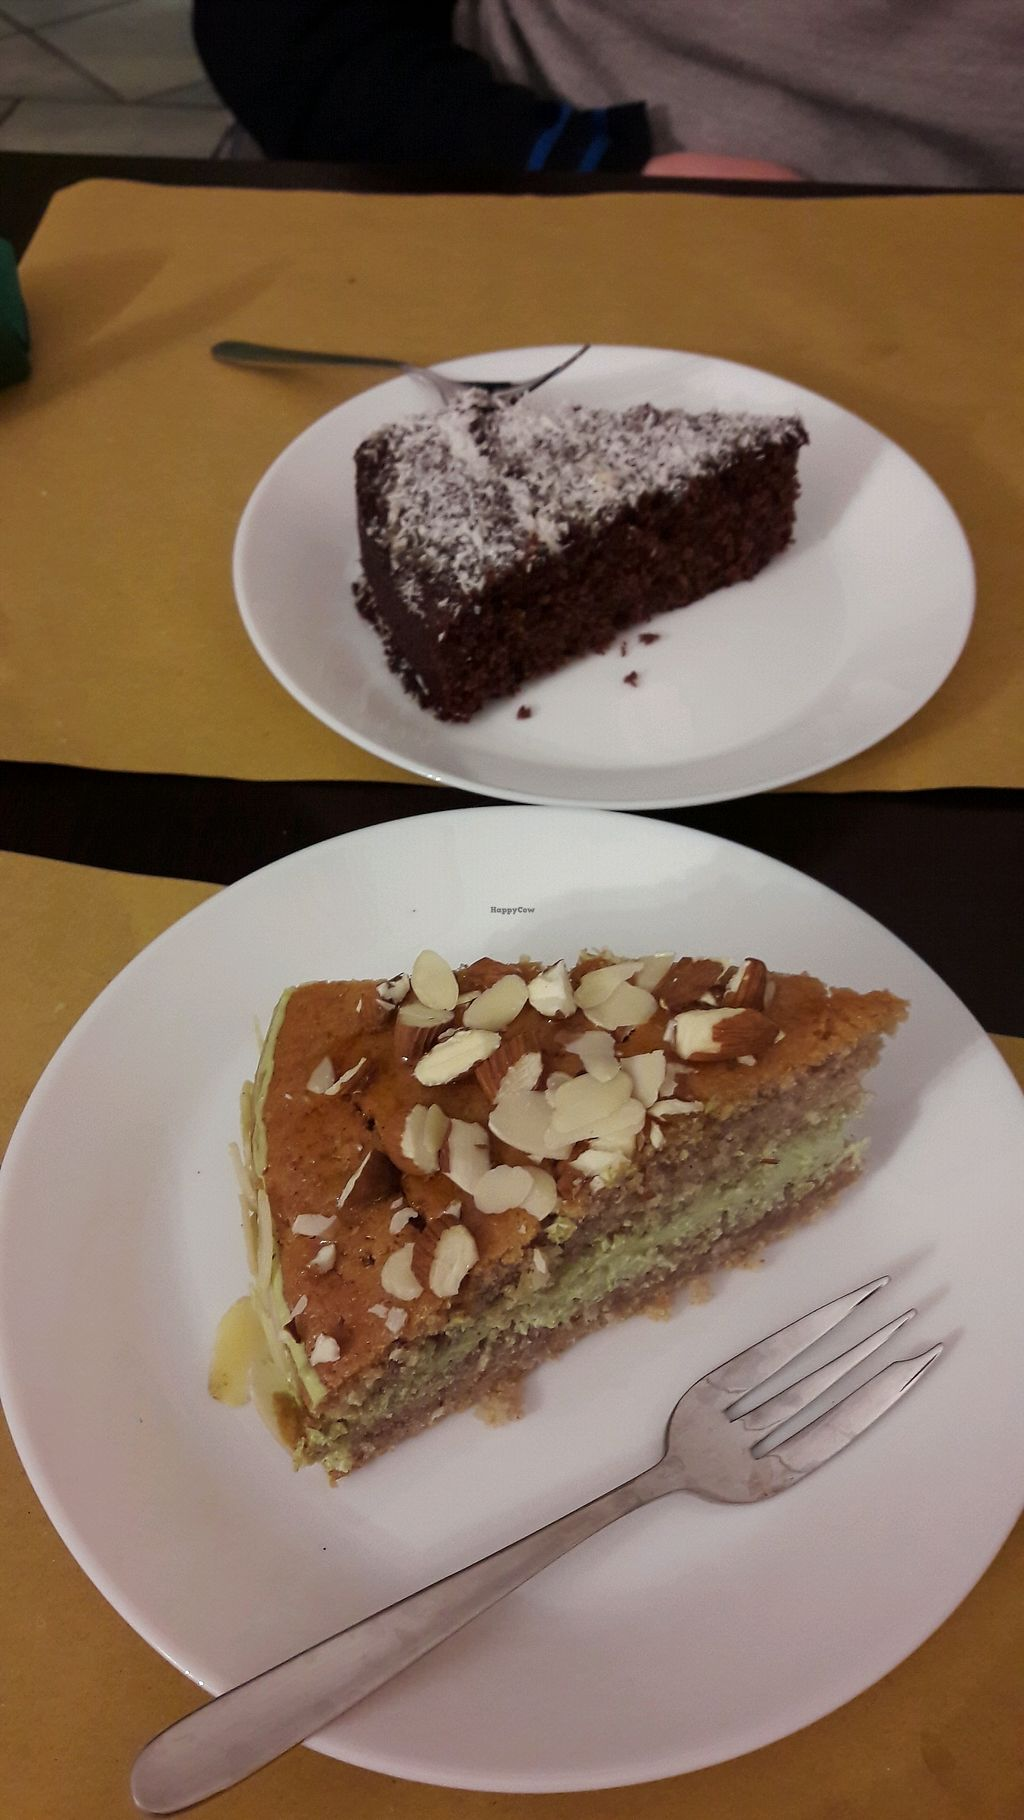 "Photo of Un'Altra Idea  by <a href=""/members/profile/KristM"">KristM</a> <br/>Great cakes! <br/> March 10, 2018  - <a href='/contact/abuse/image/83717/368993'>Report</a>"